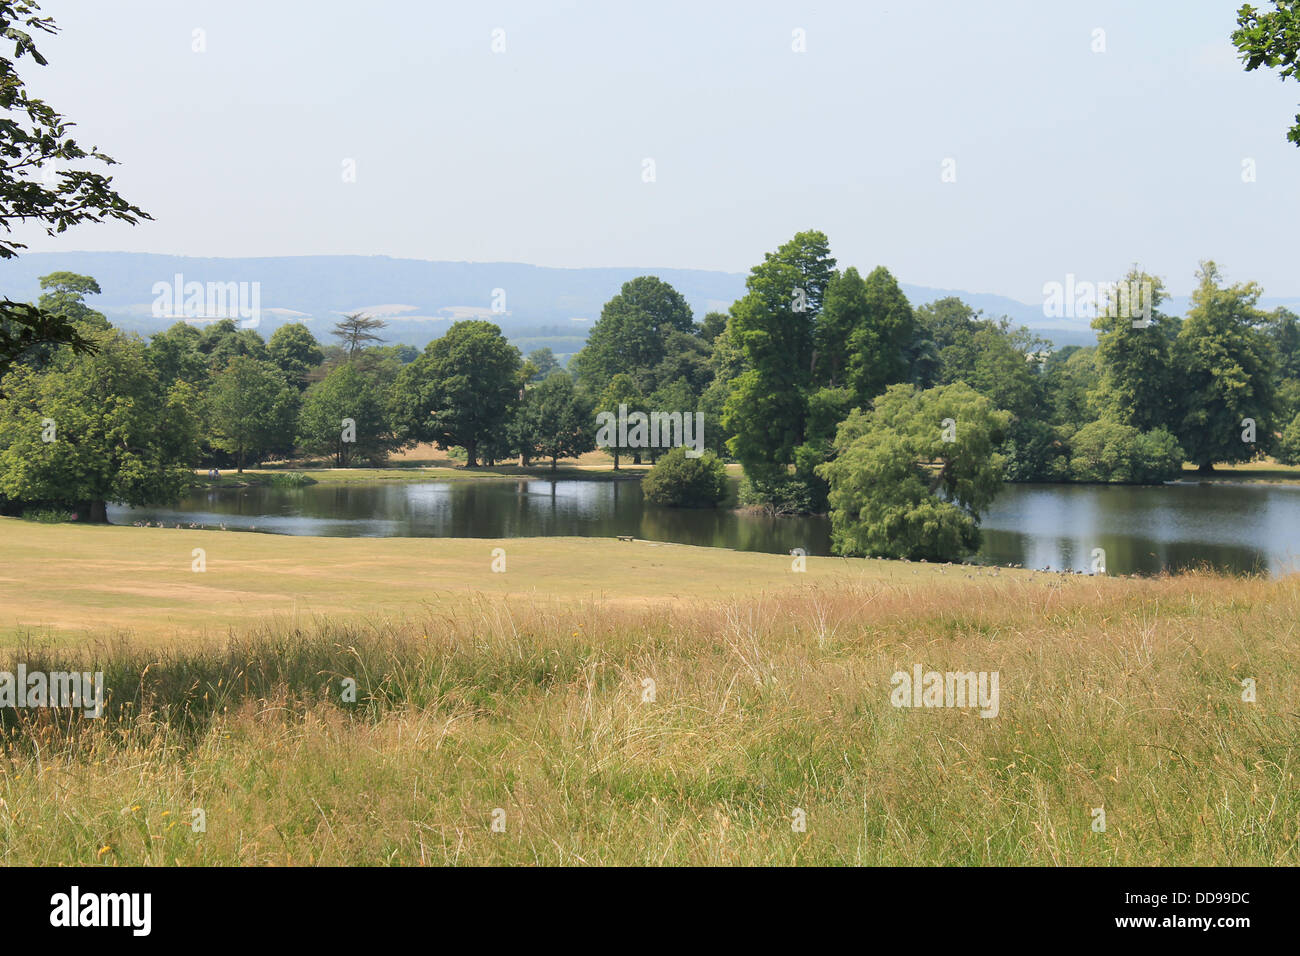 The lake in the grounds of Petworth Park, West Sussex, UK - Stock Image